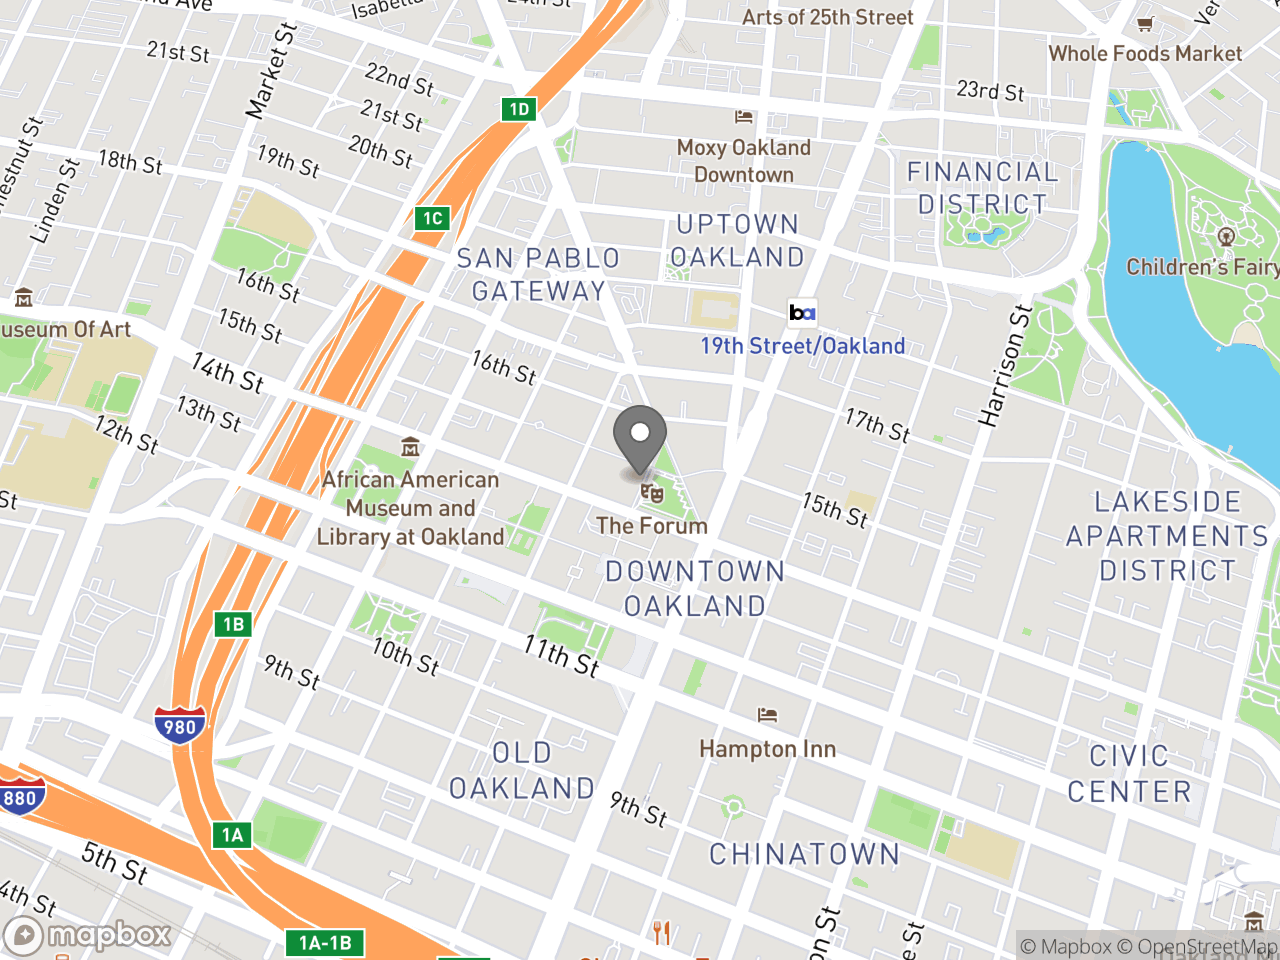 Map location for May 1, 2019 Policies & Procedures Committee Meeting, located at 1 Frank H Ogawa Plaza in Oakland, CA 94612